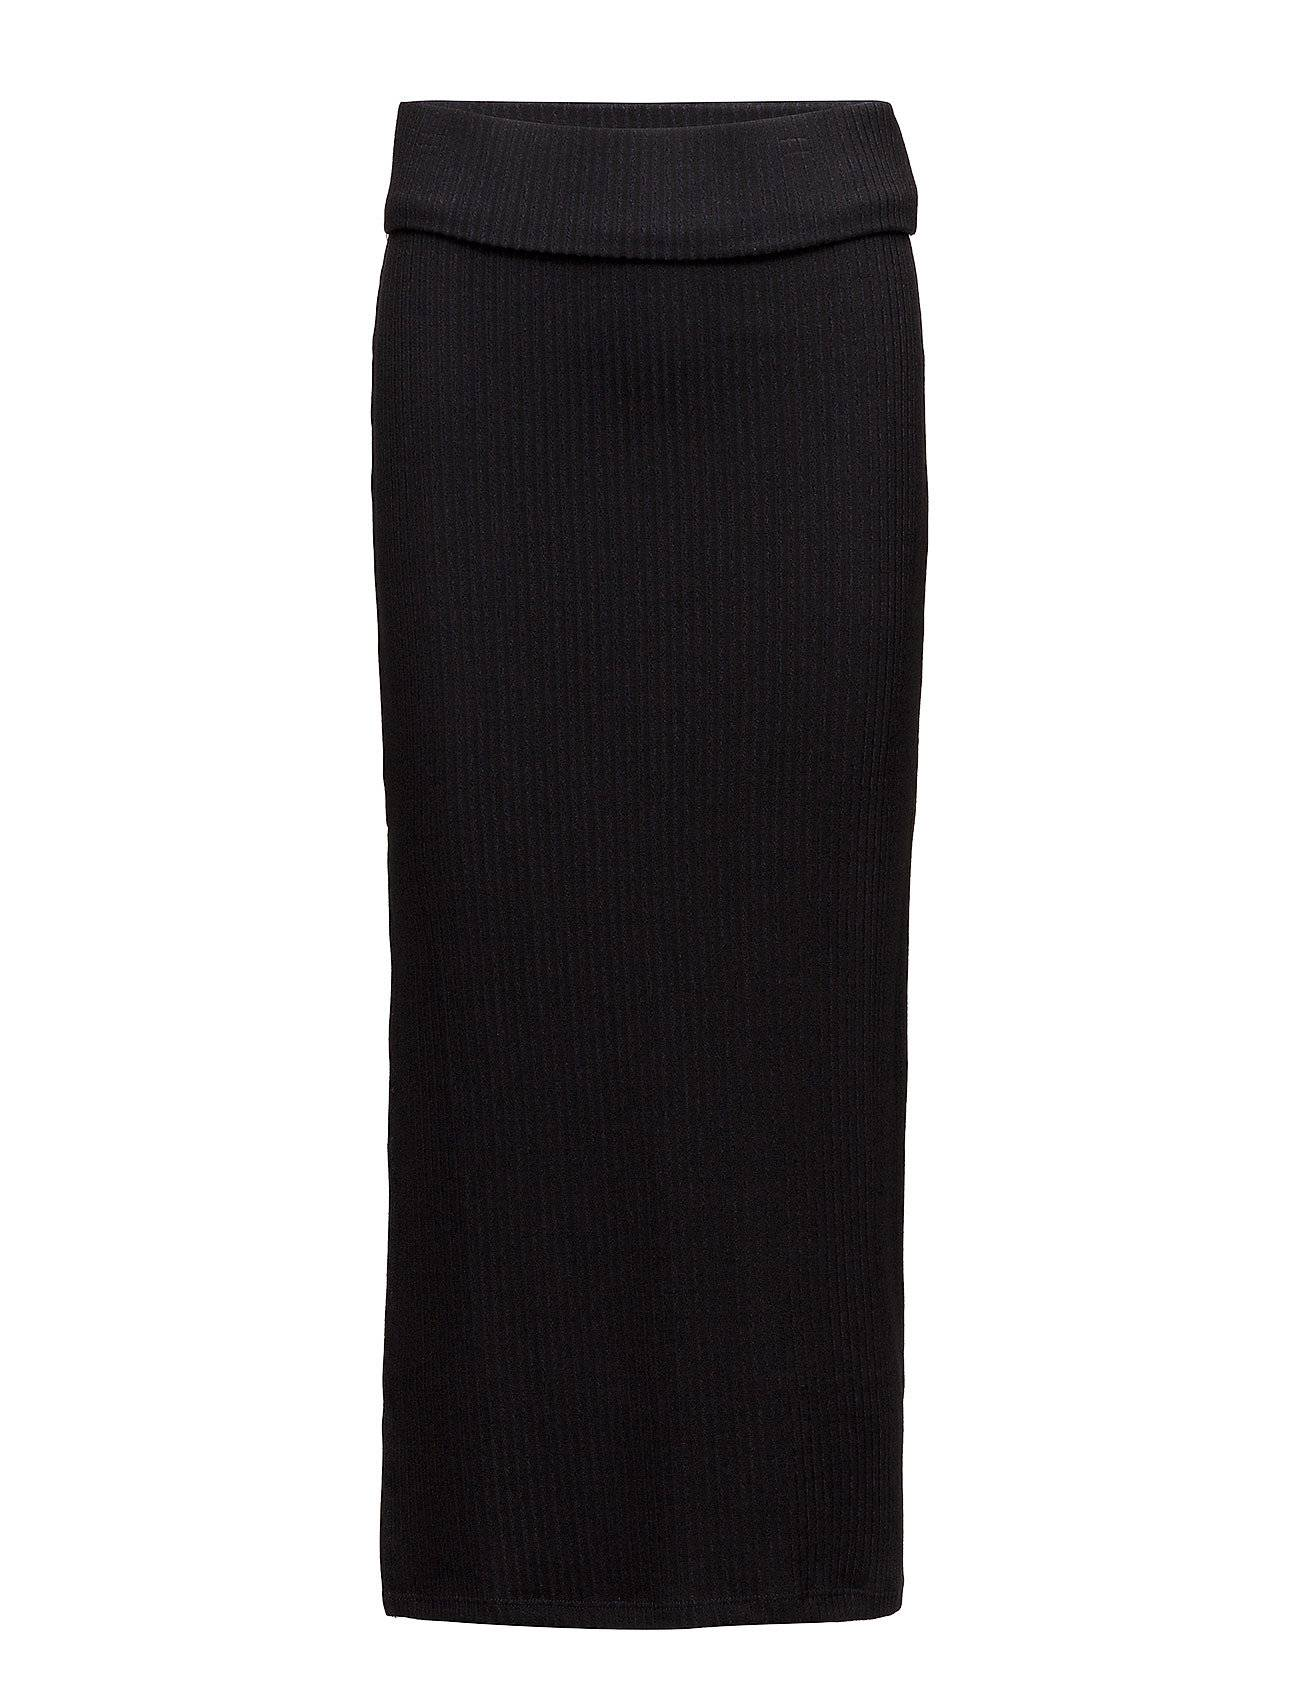 French Connection Petra Rib Jersey Split Skirt